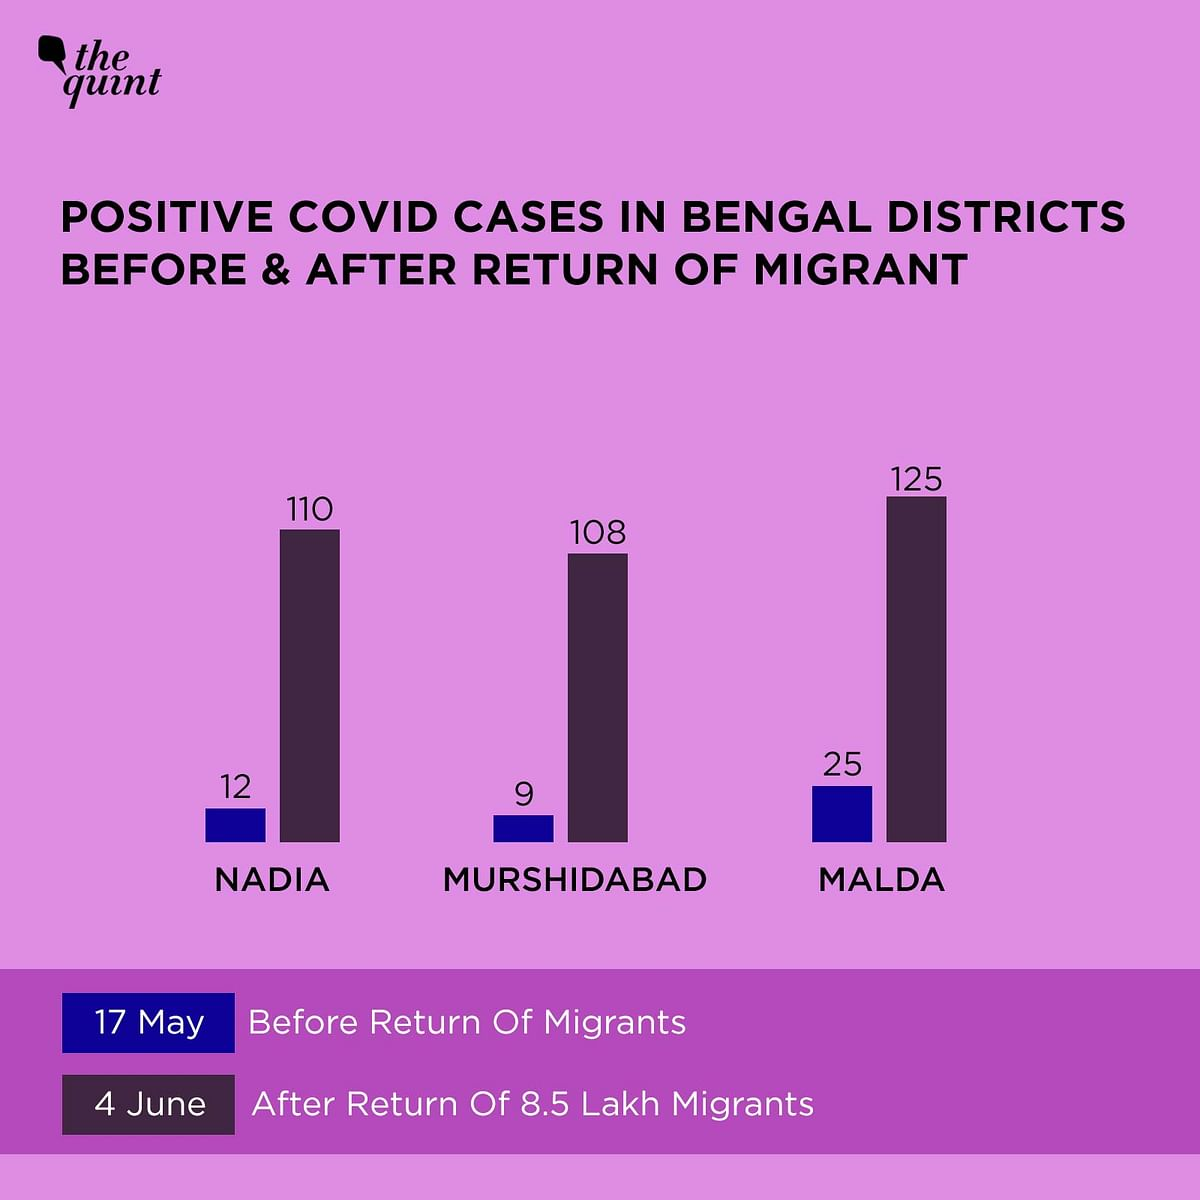 A comparison of cases in three Bengal districts that saw influx of migrants, before and after the return of migrants.